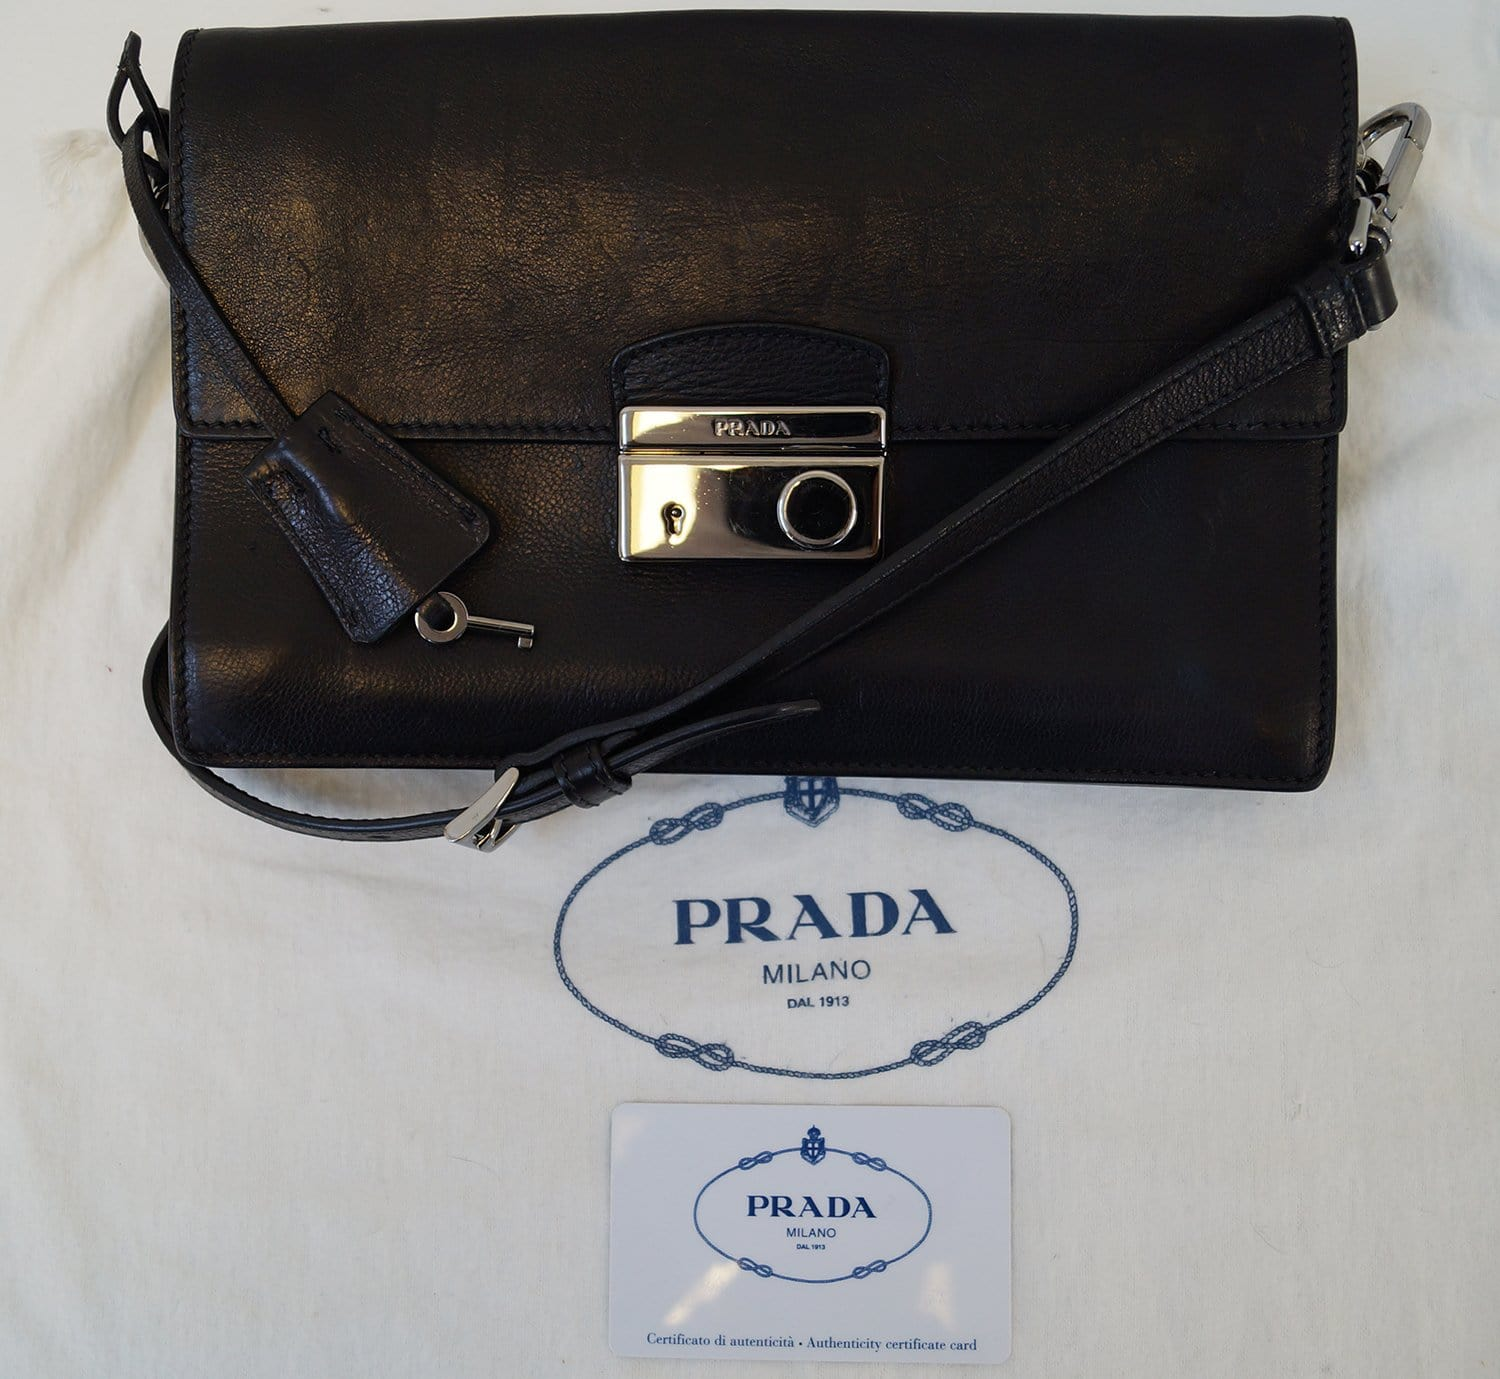 787907ac1429 Authentic PRADA Saffiano Leather Black Crossbody Bag E3238